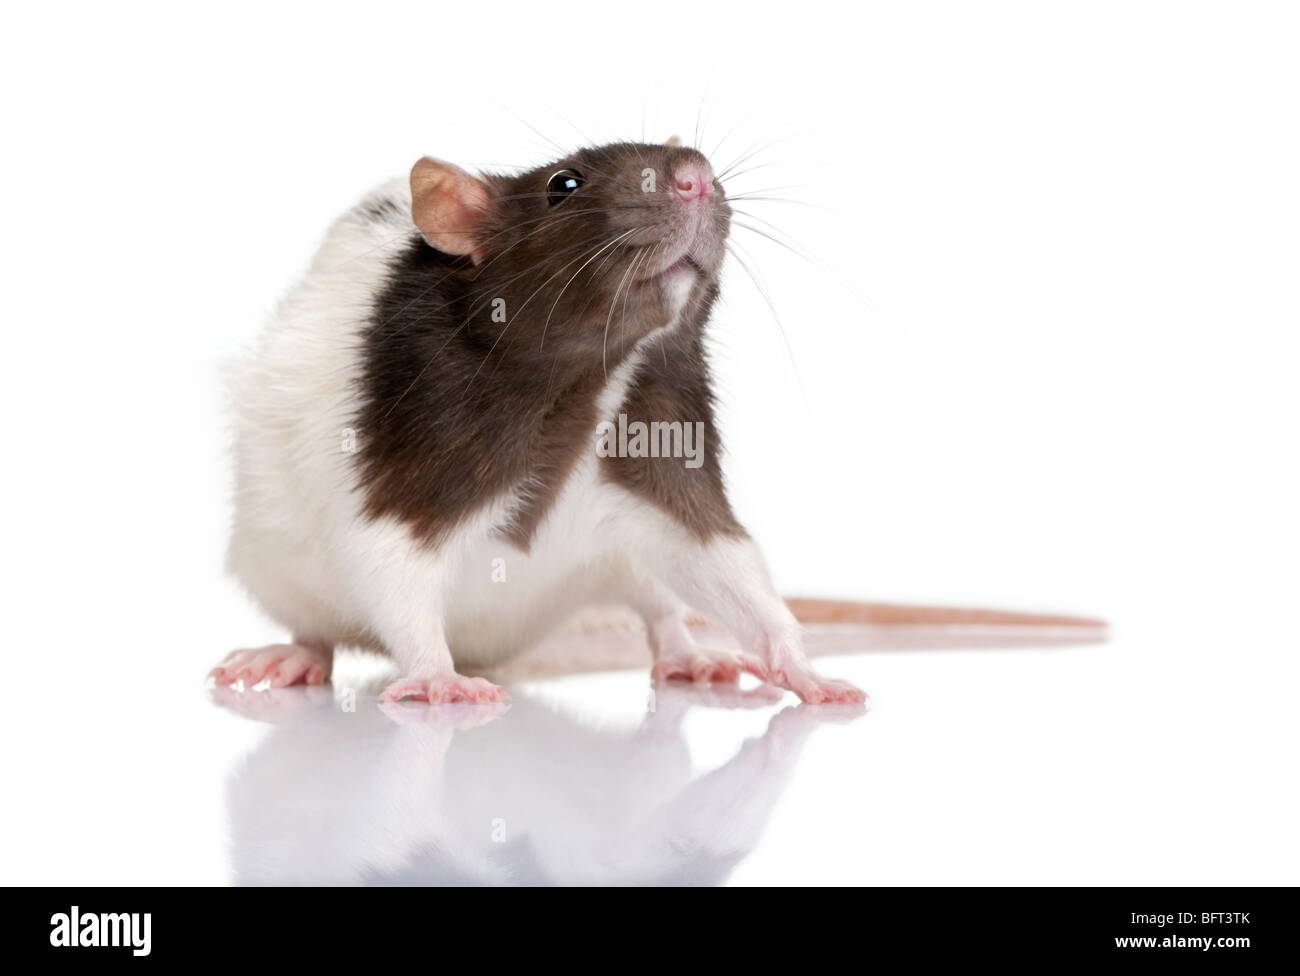 Rat, 1 year old, standing in front of a white background, studio shot - Stock Image